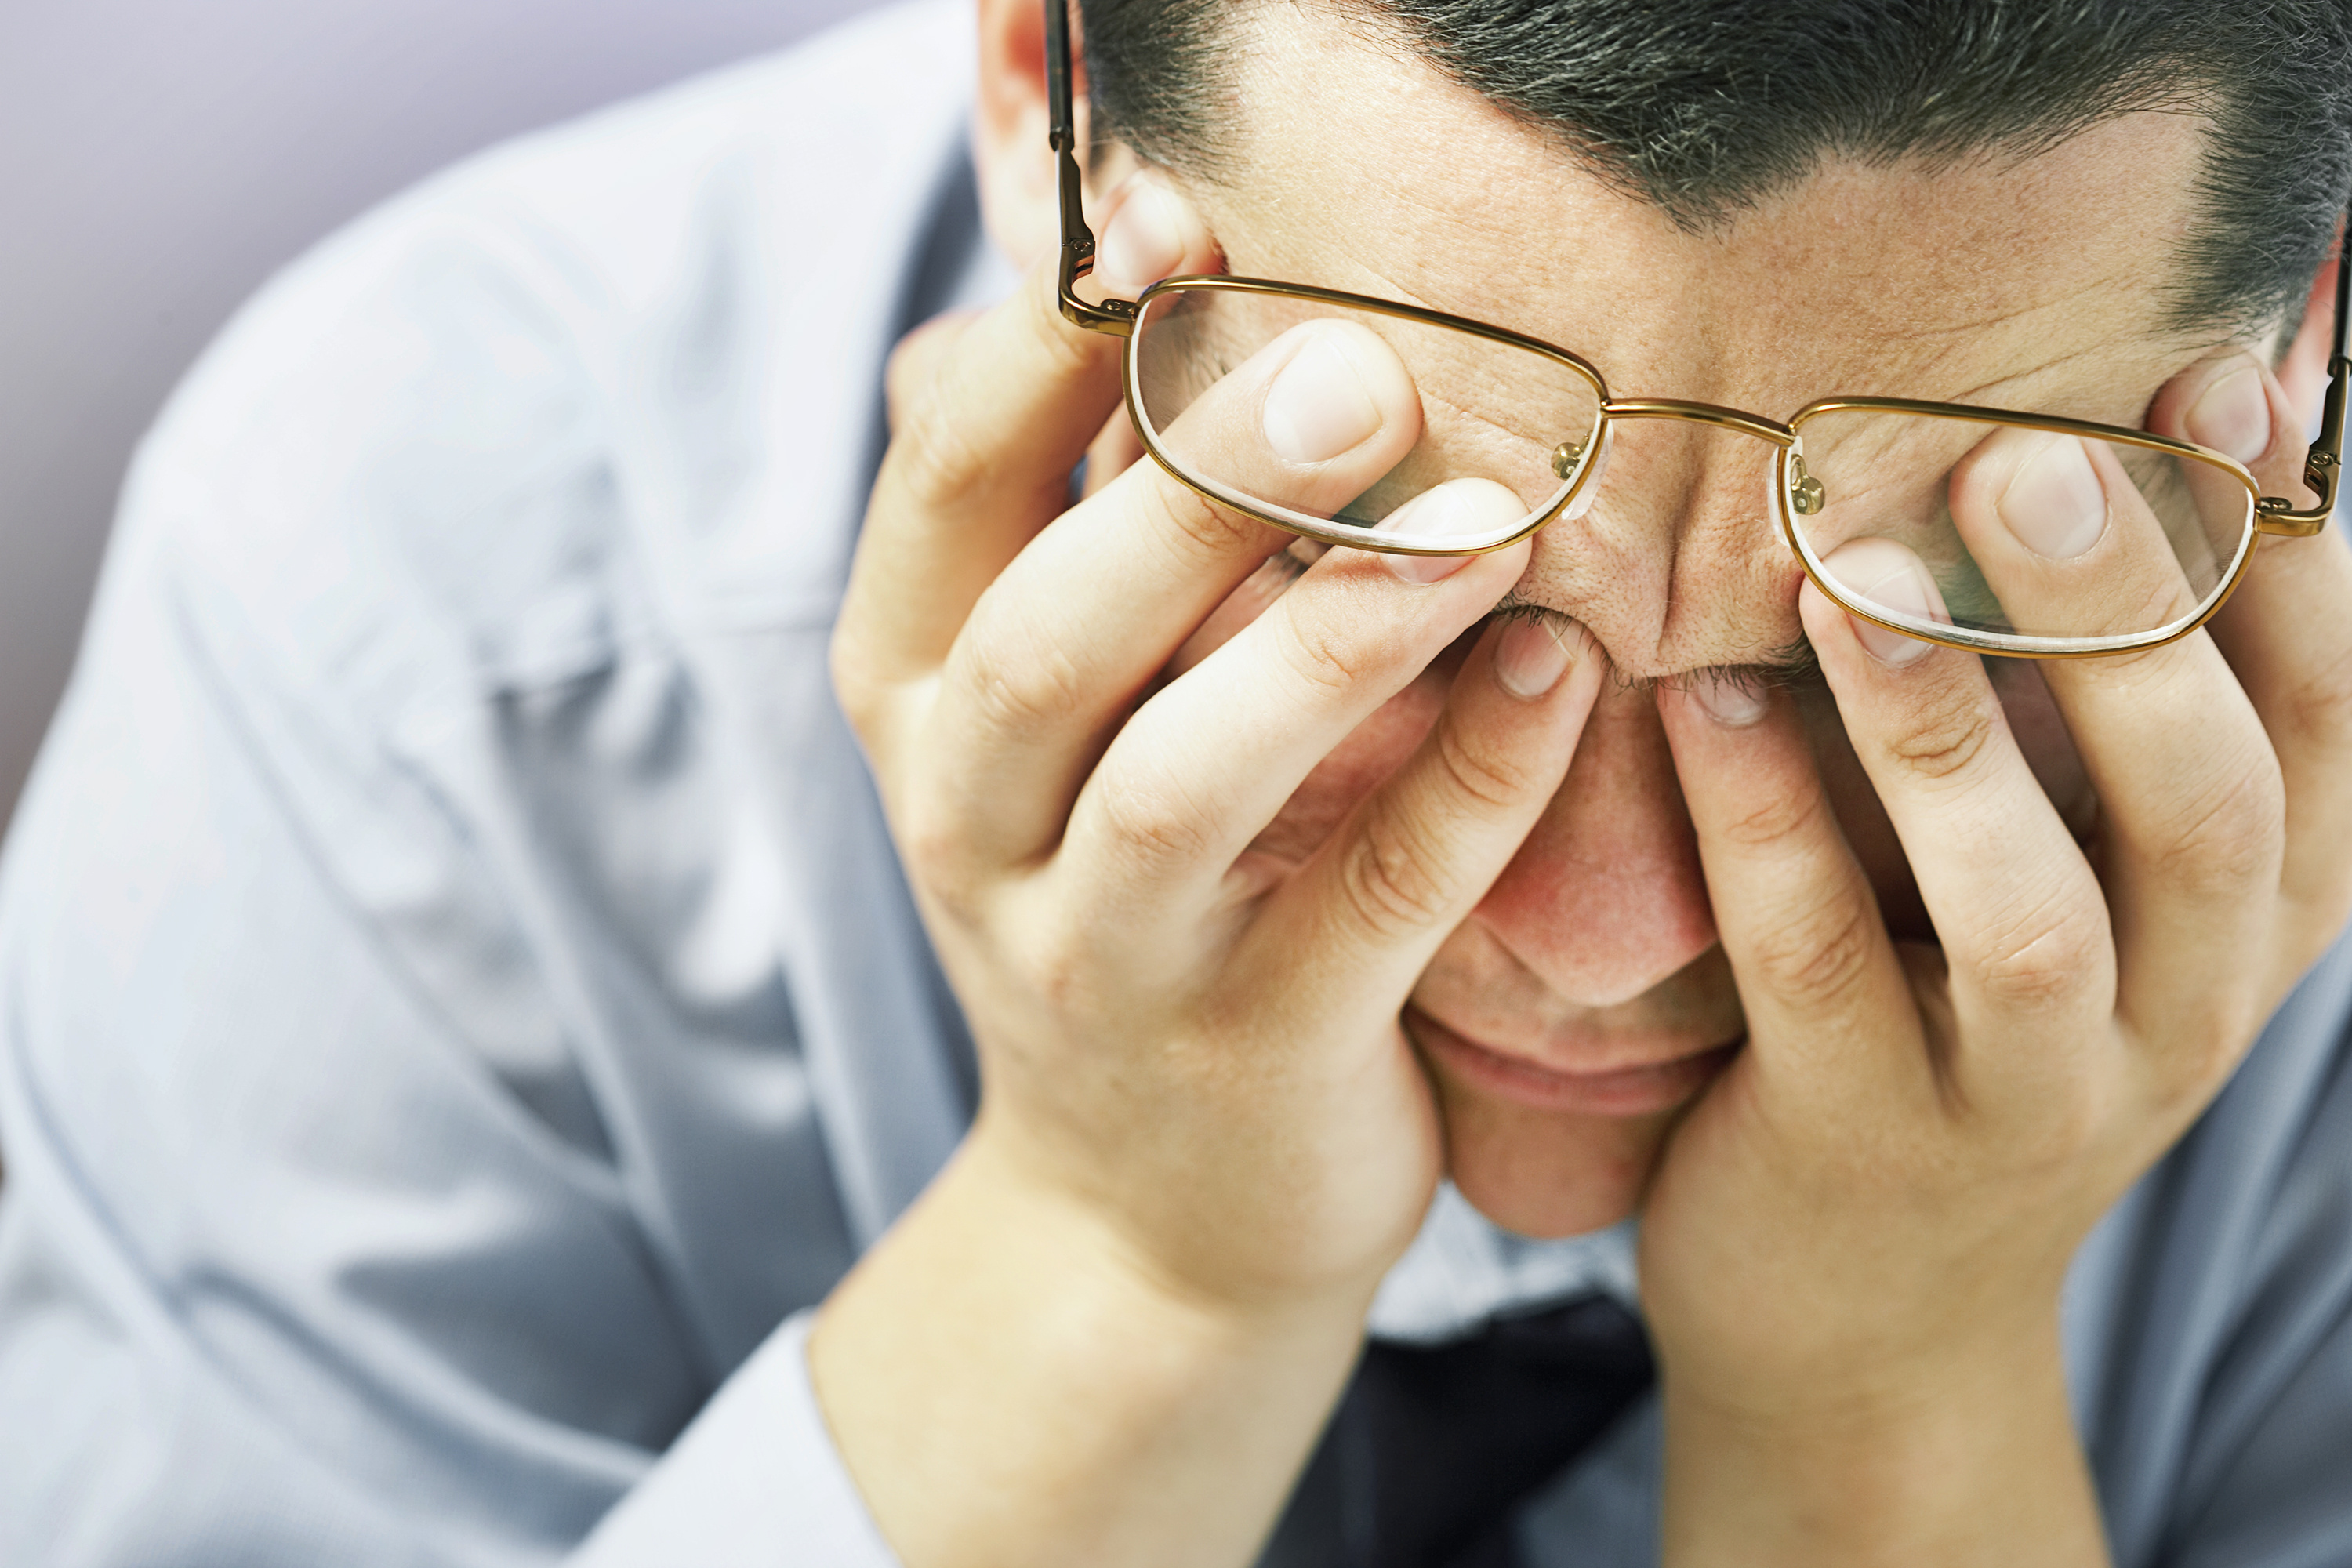 What to do about workplace bullying